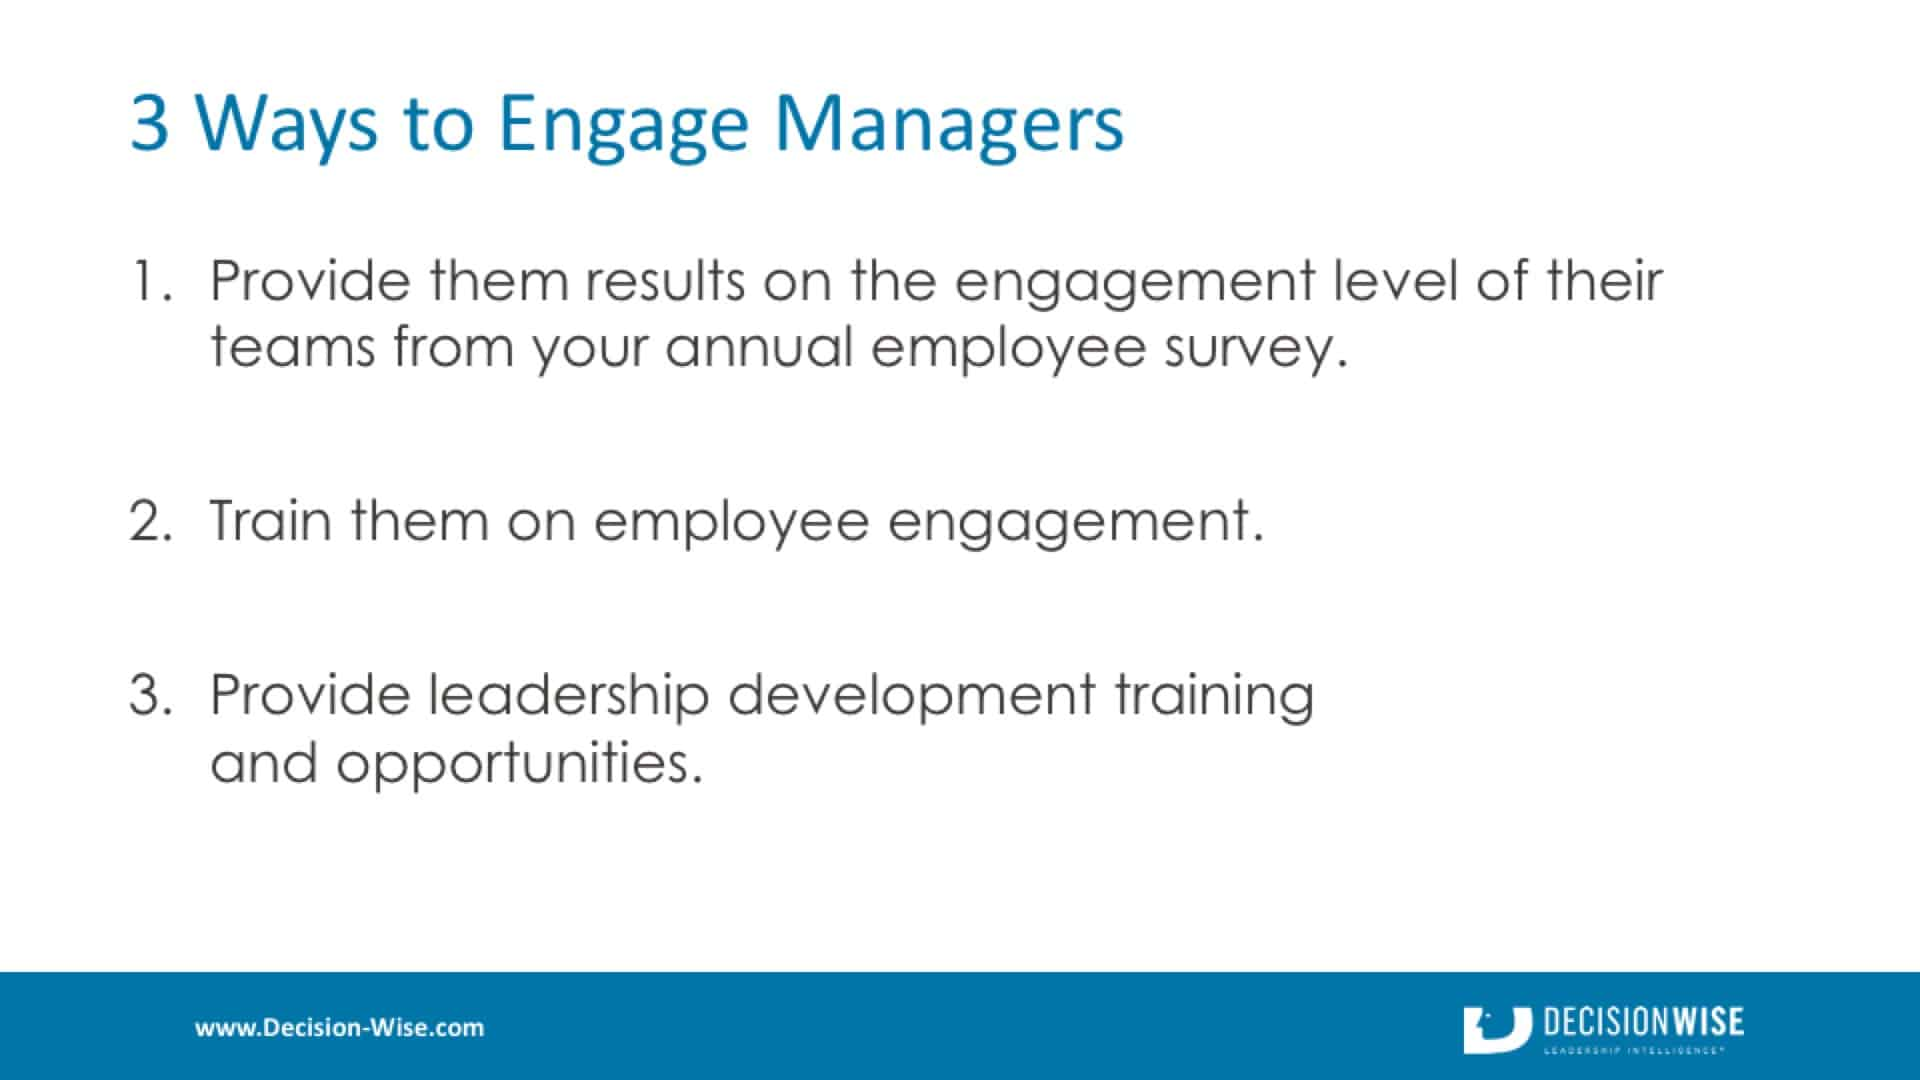 3 Ways to Engage Managers